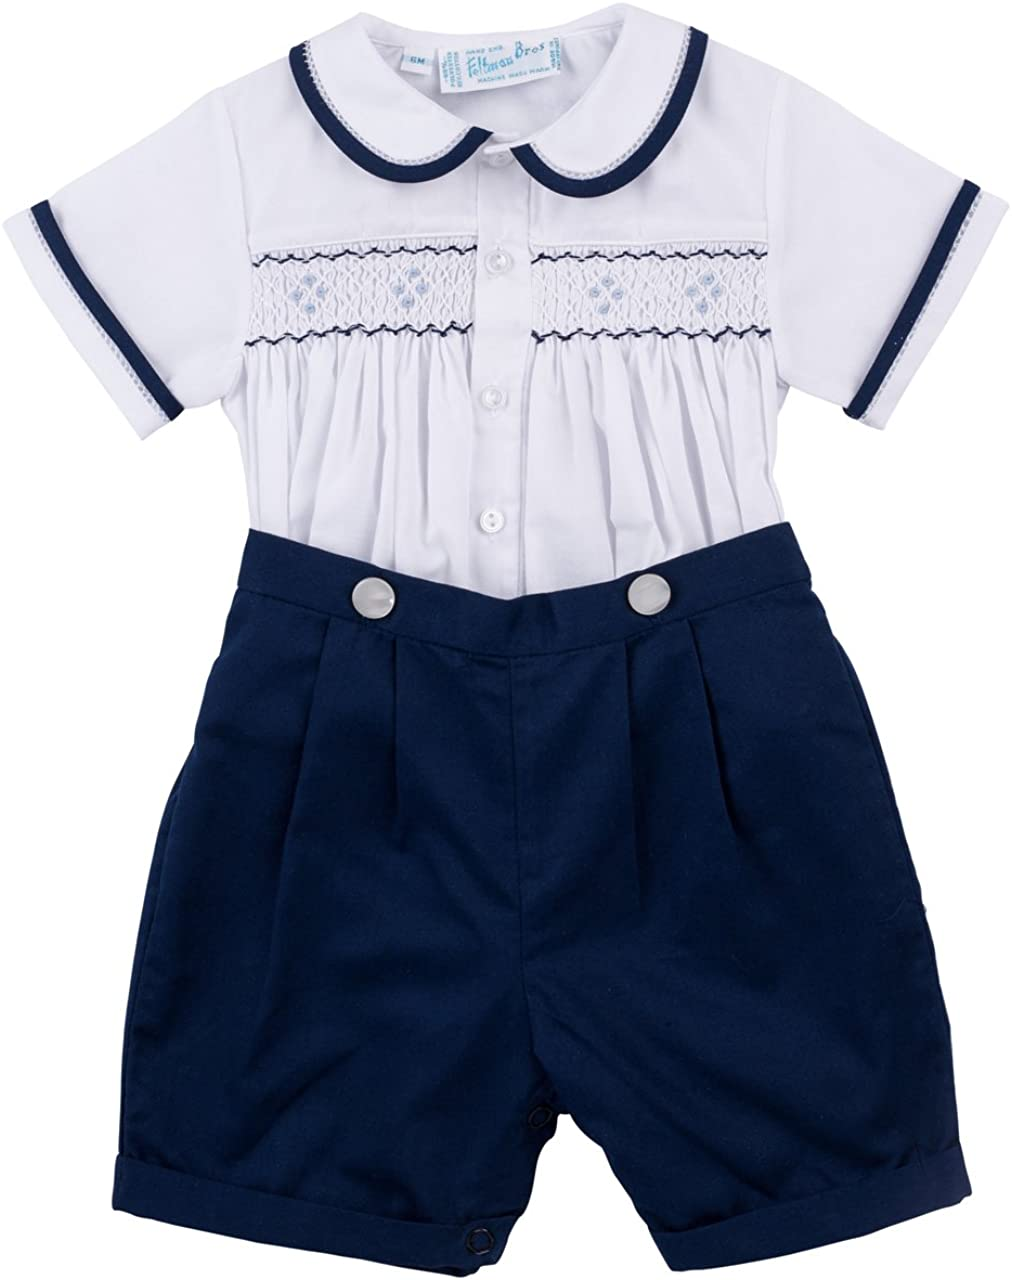 Feltman Brothers Boys Navy and White 2 Piece Smocked Bobby Suit 9 Months